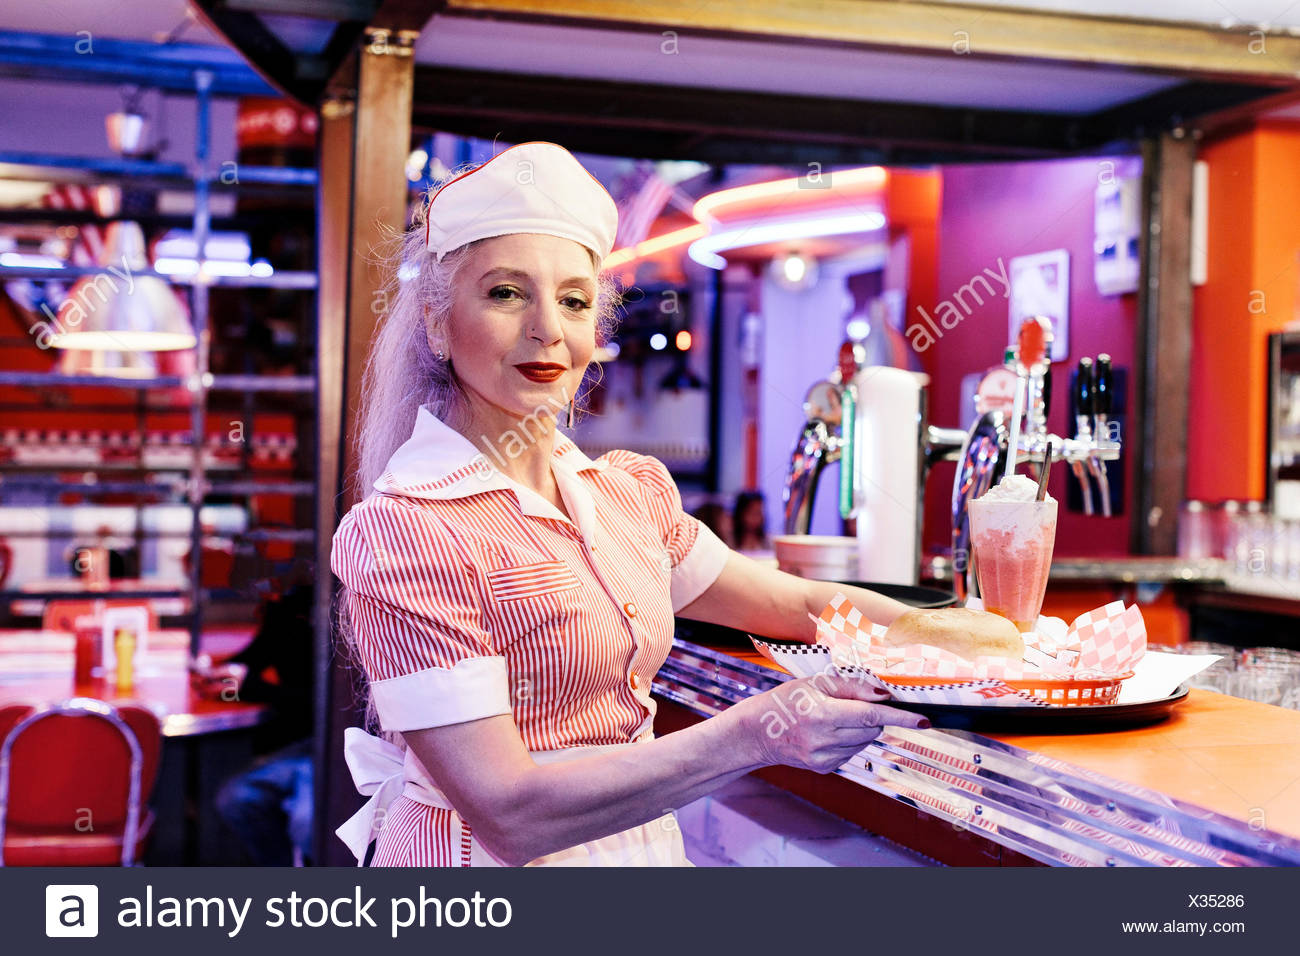 1950s Diner Stock Photos & 1950s Diner Stock Images - Alamy